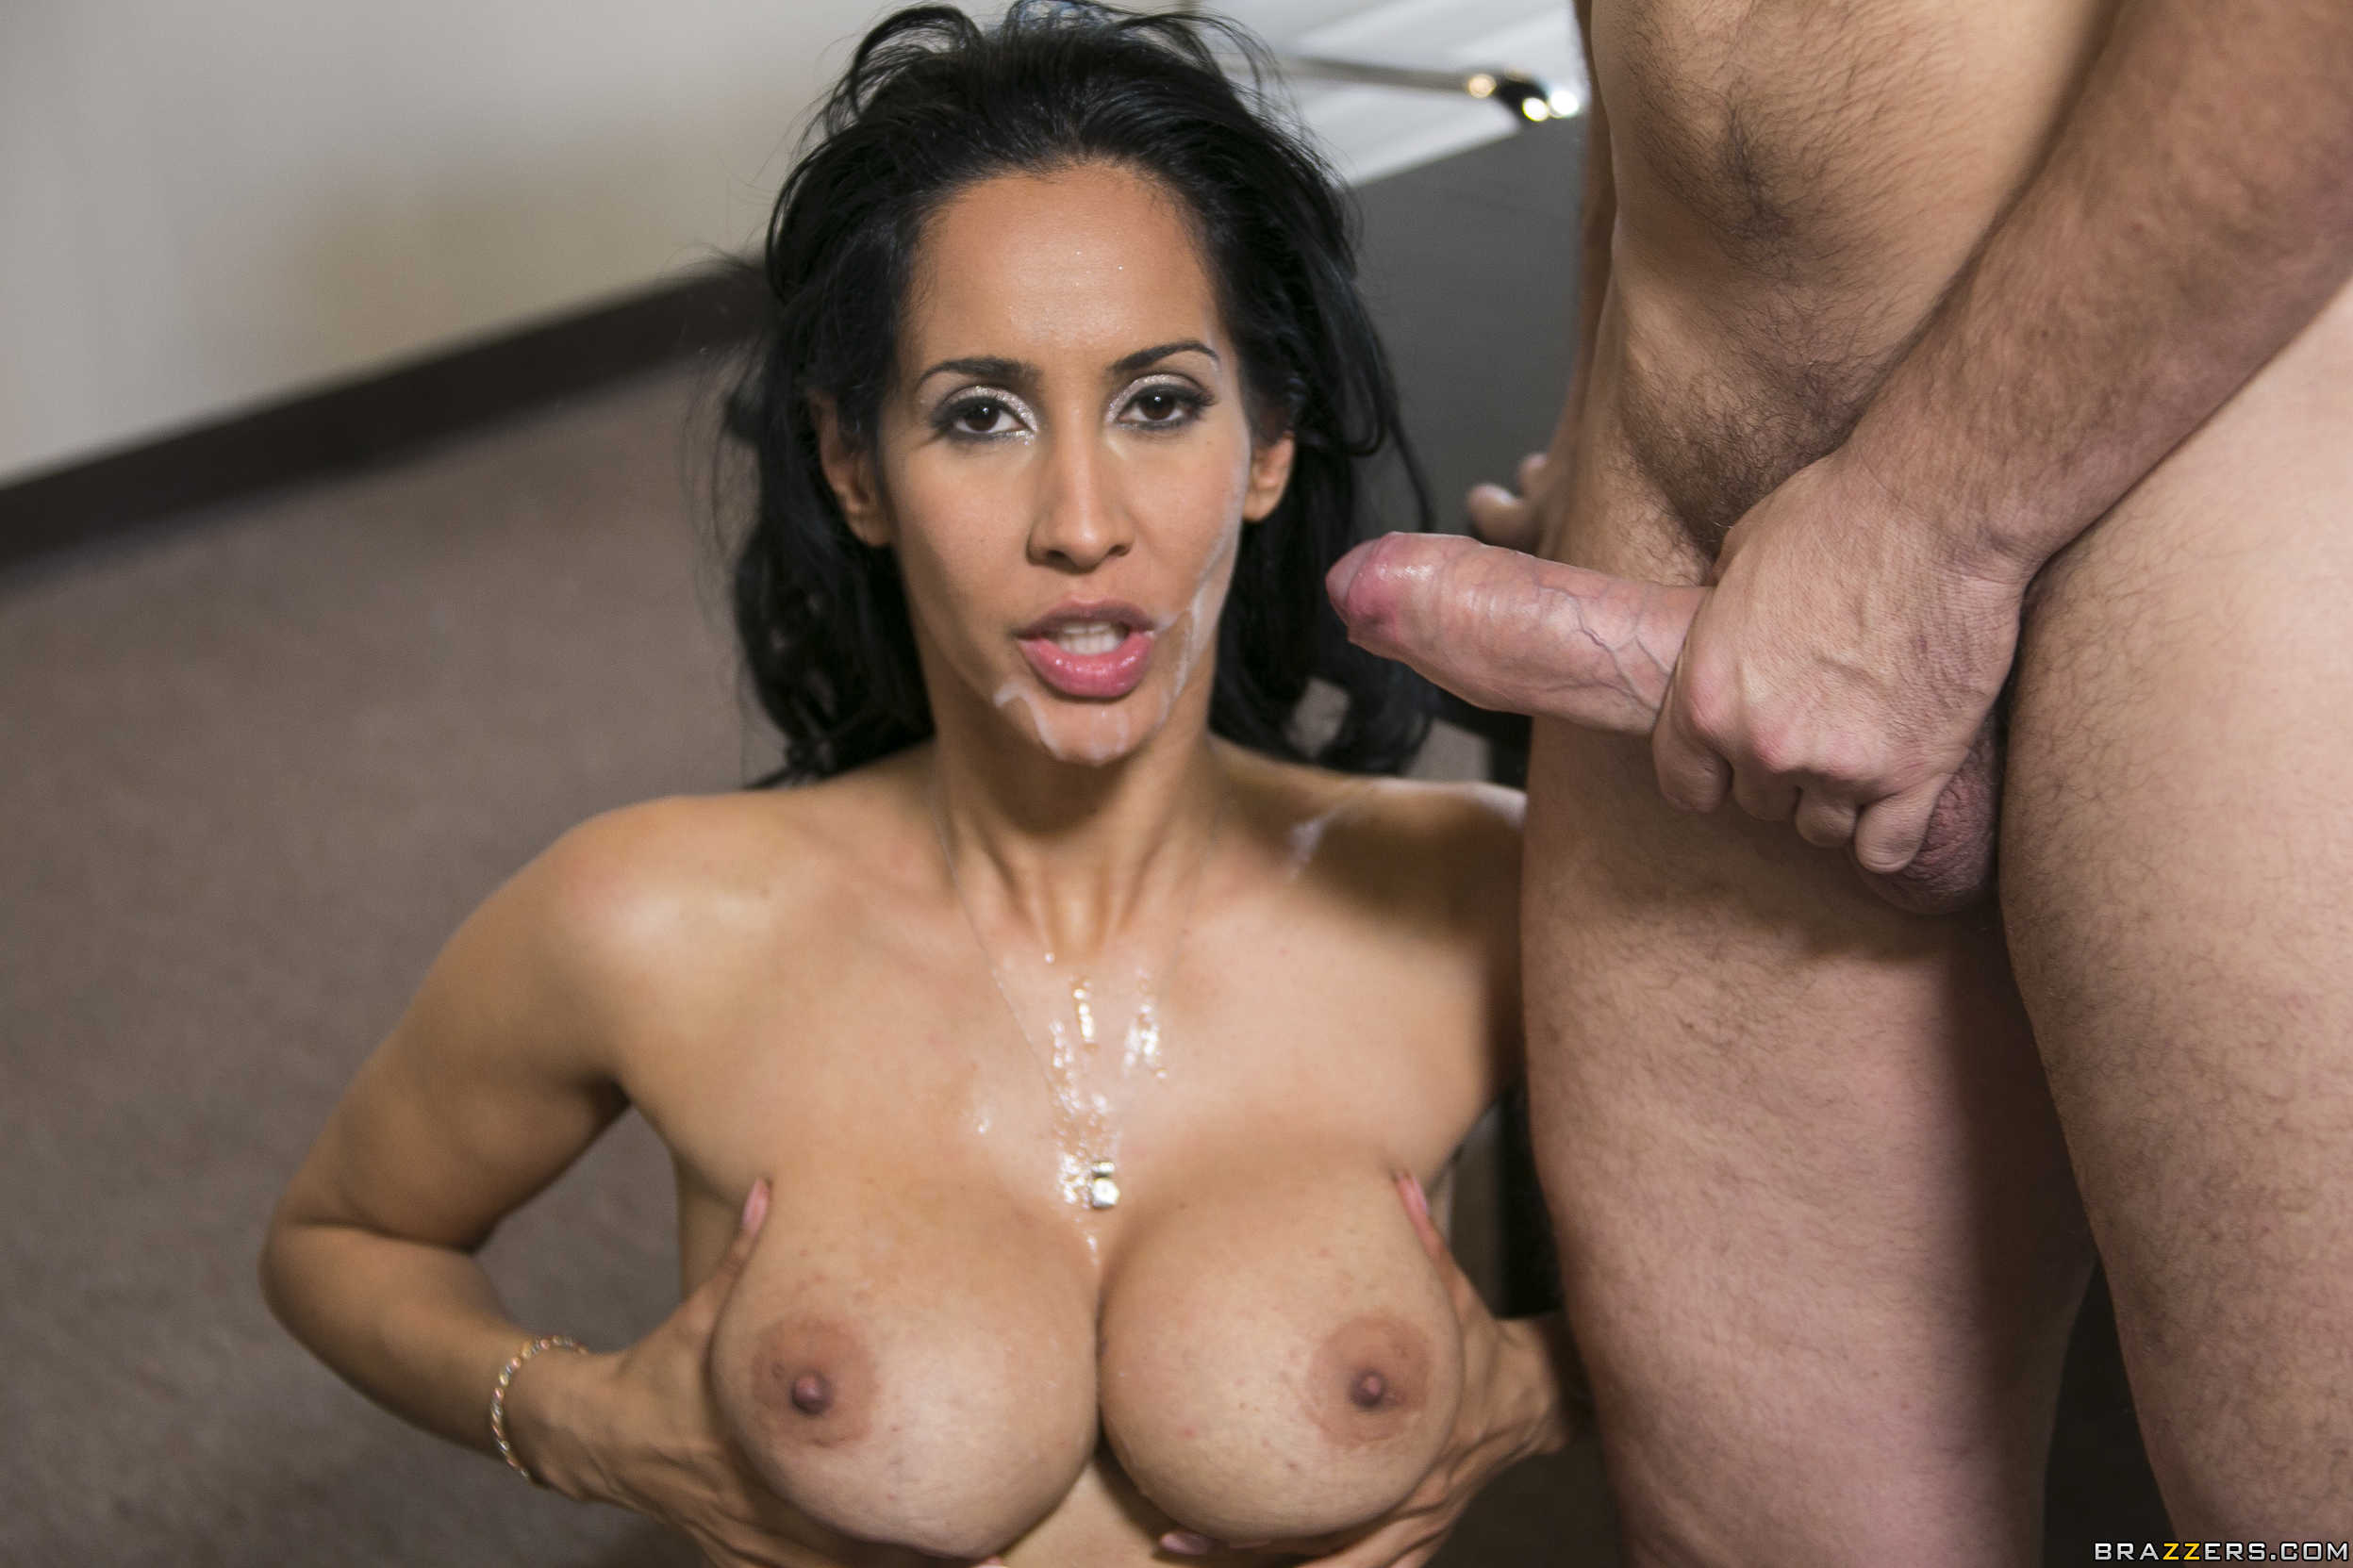 Rather cum huge latina consider